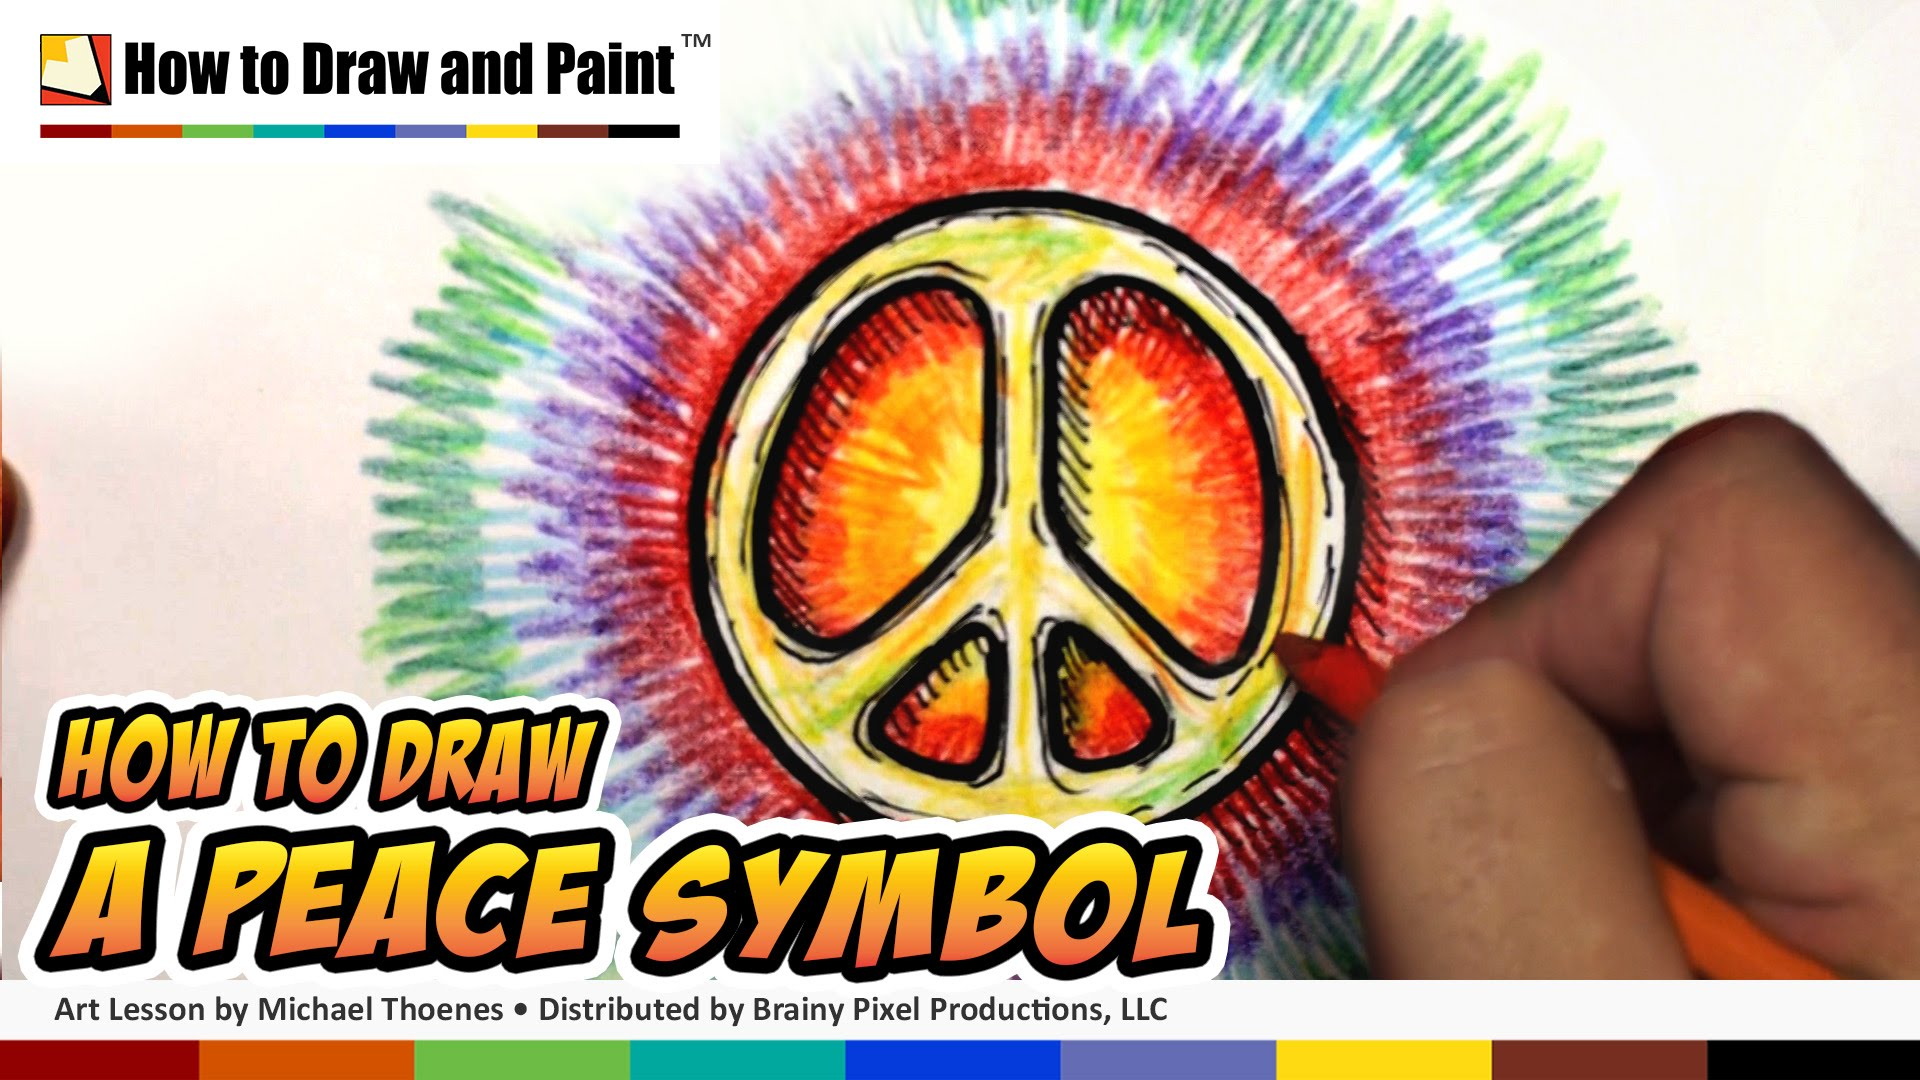 Drawn peace sign awesome From Draw MAT Unsubscribe How